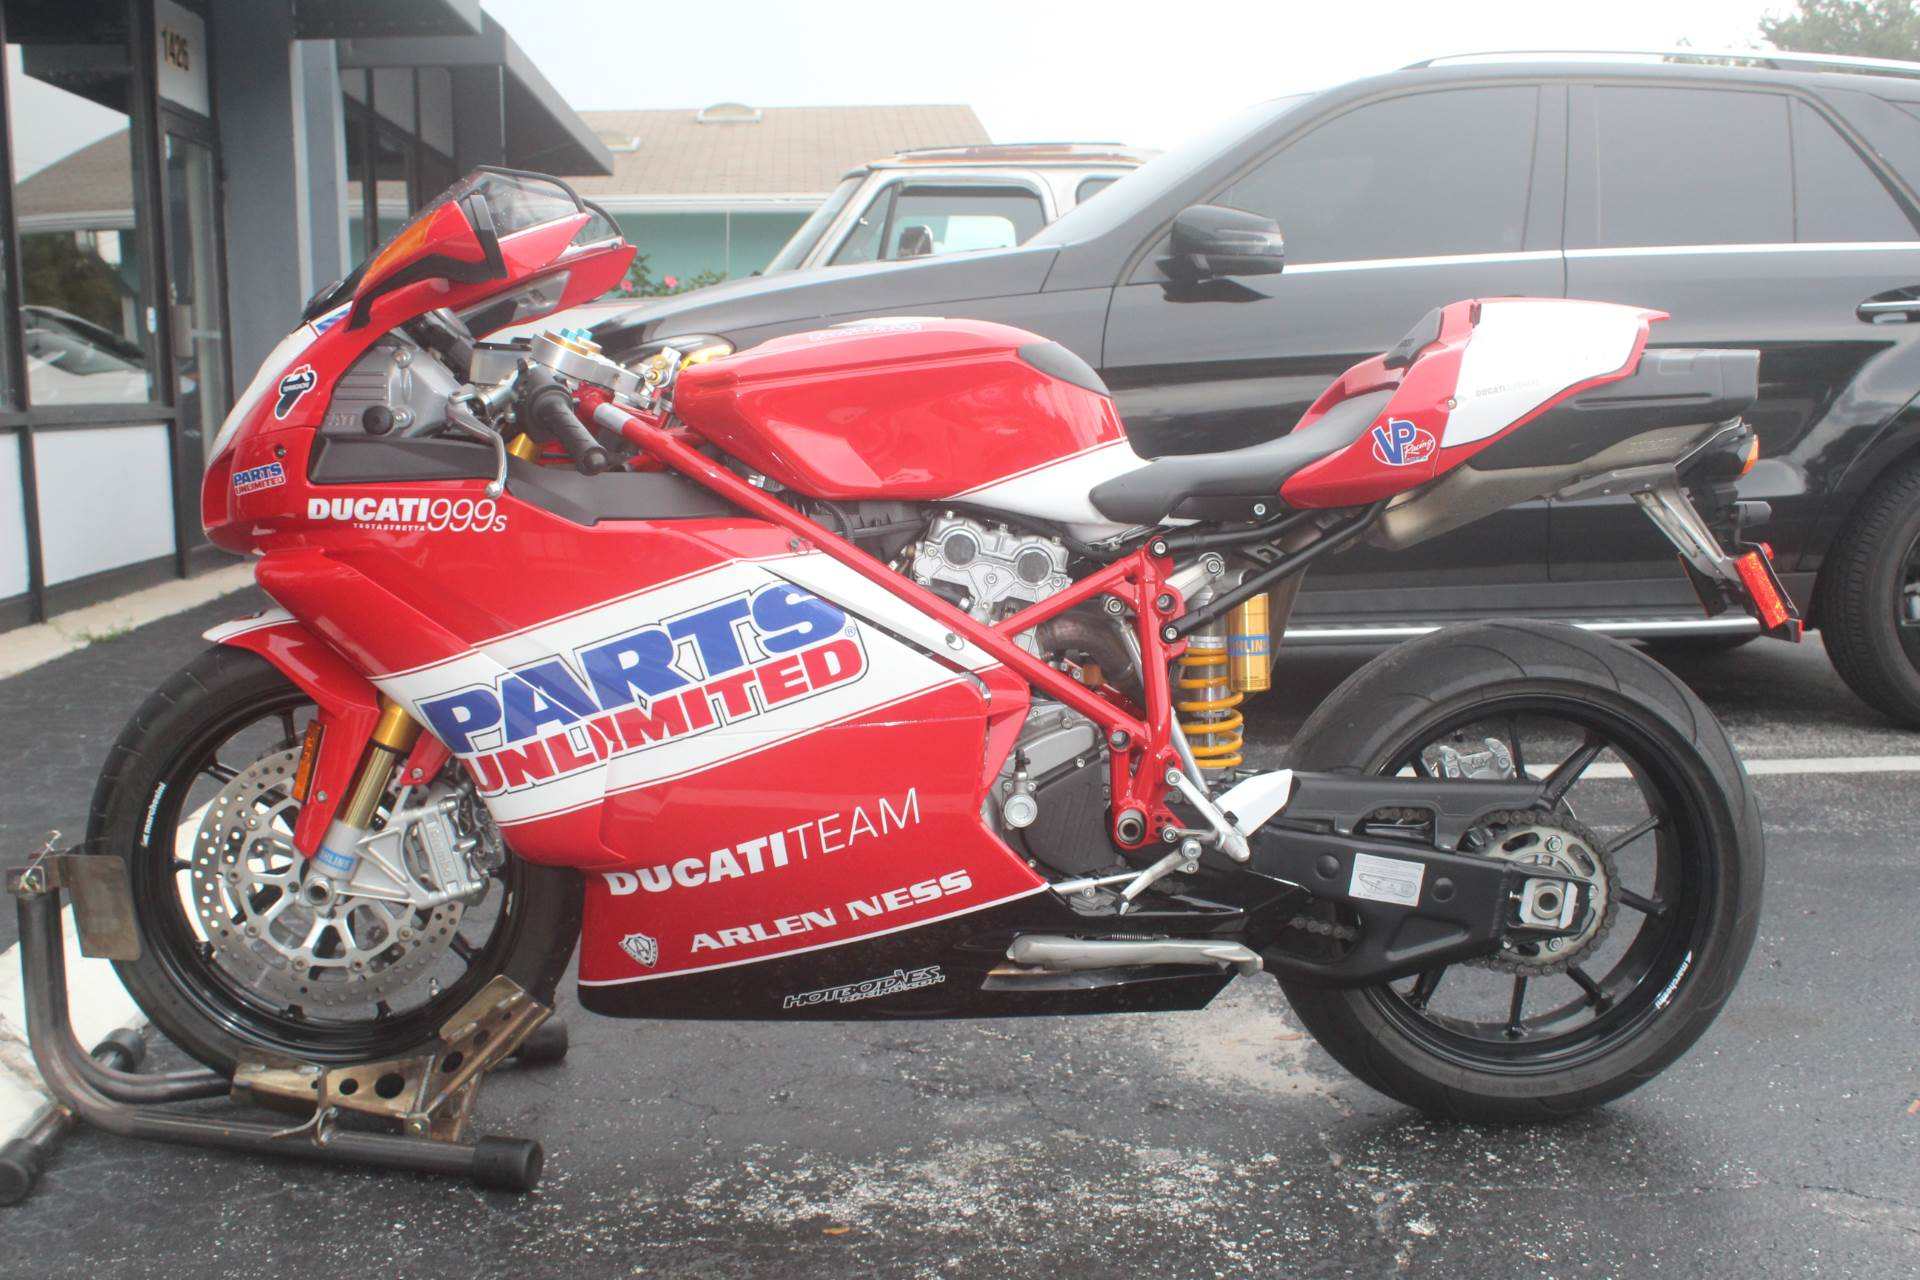 2007 Ducati Superbike 999s Team USA in Lake Park, Florida